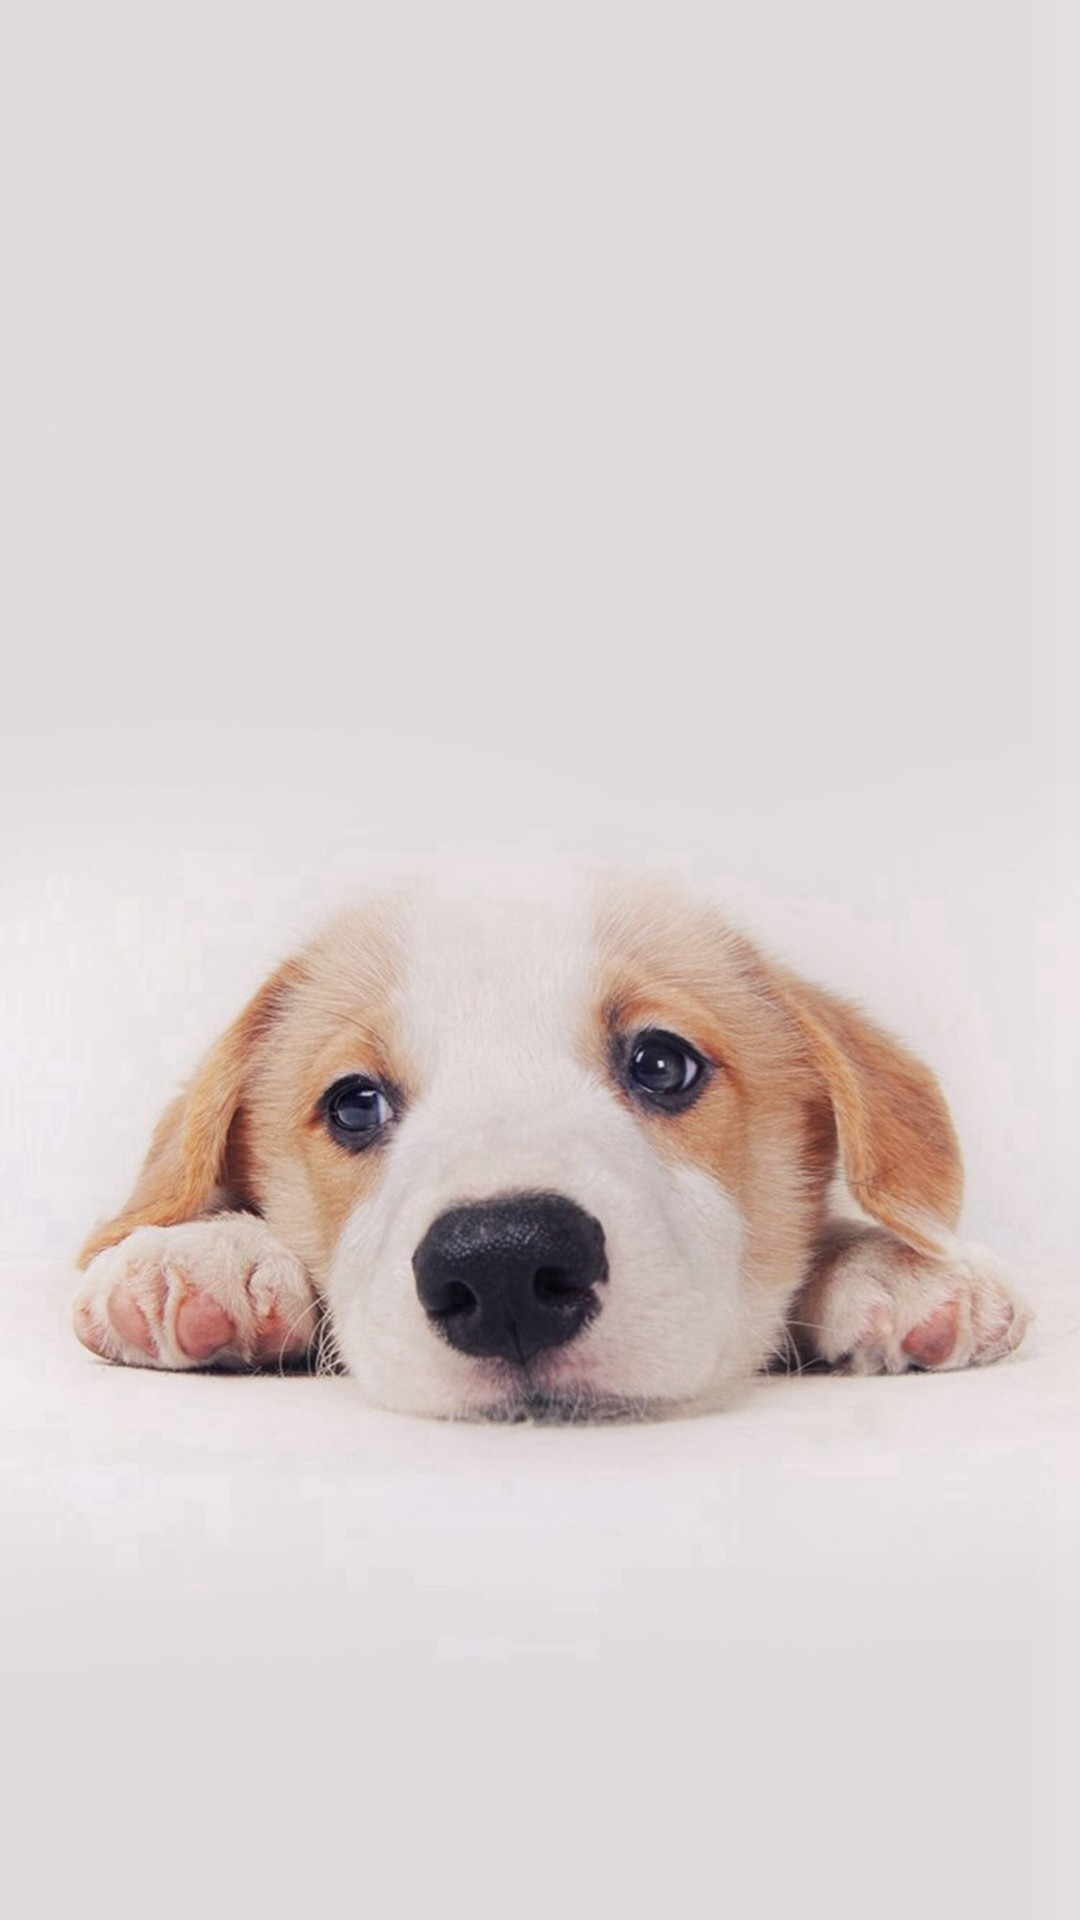 Cute Puppy Pictures Wallpaper ·① WallpaperTag